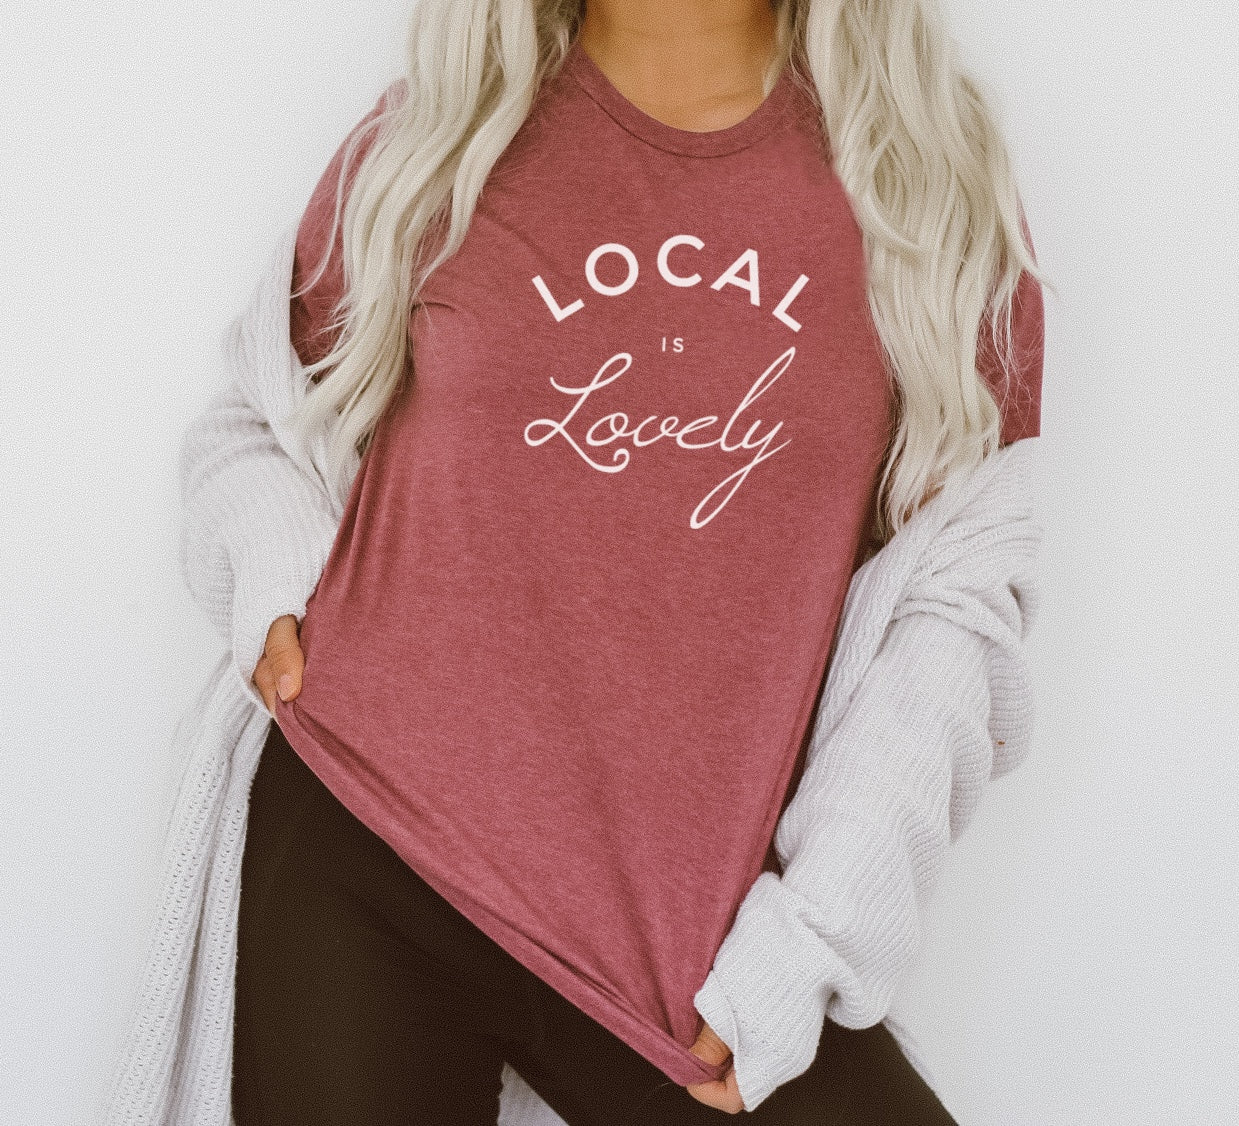 Local is Lovely Tee